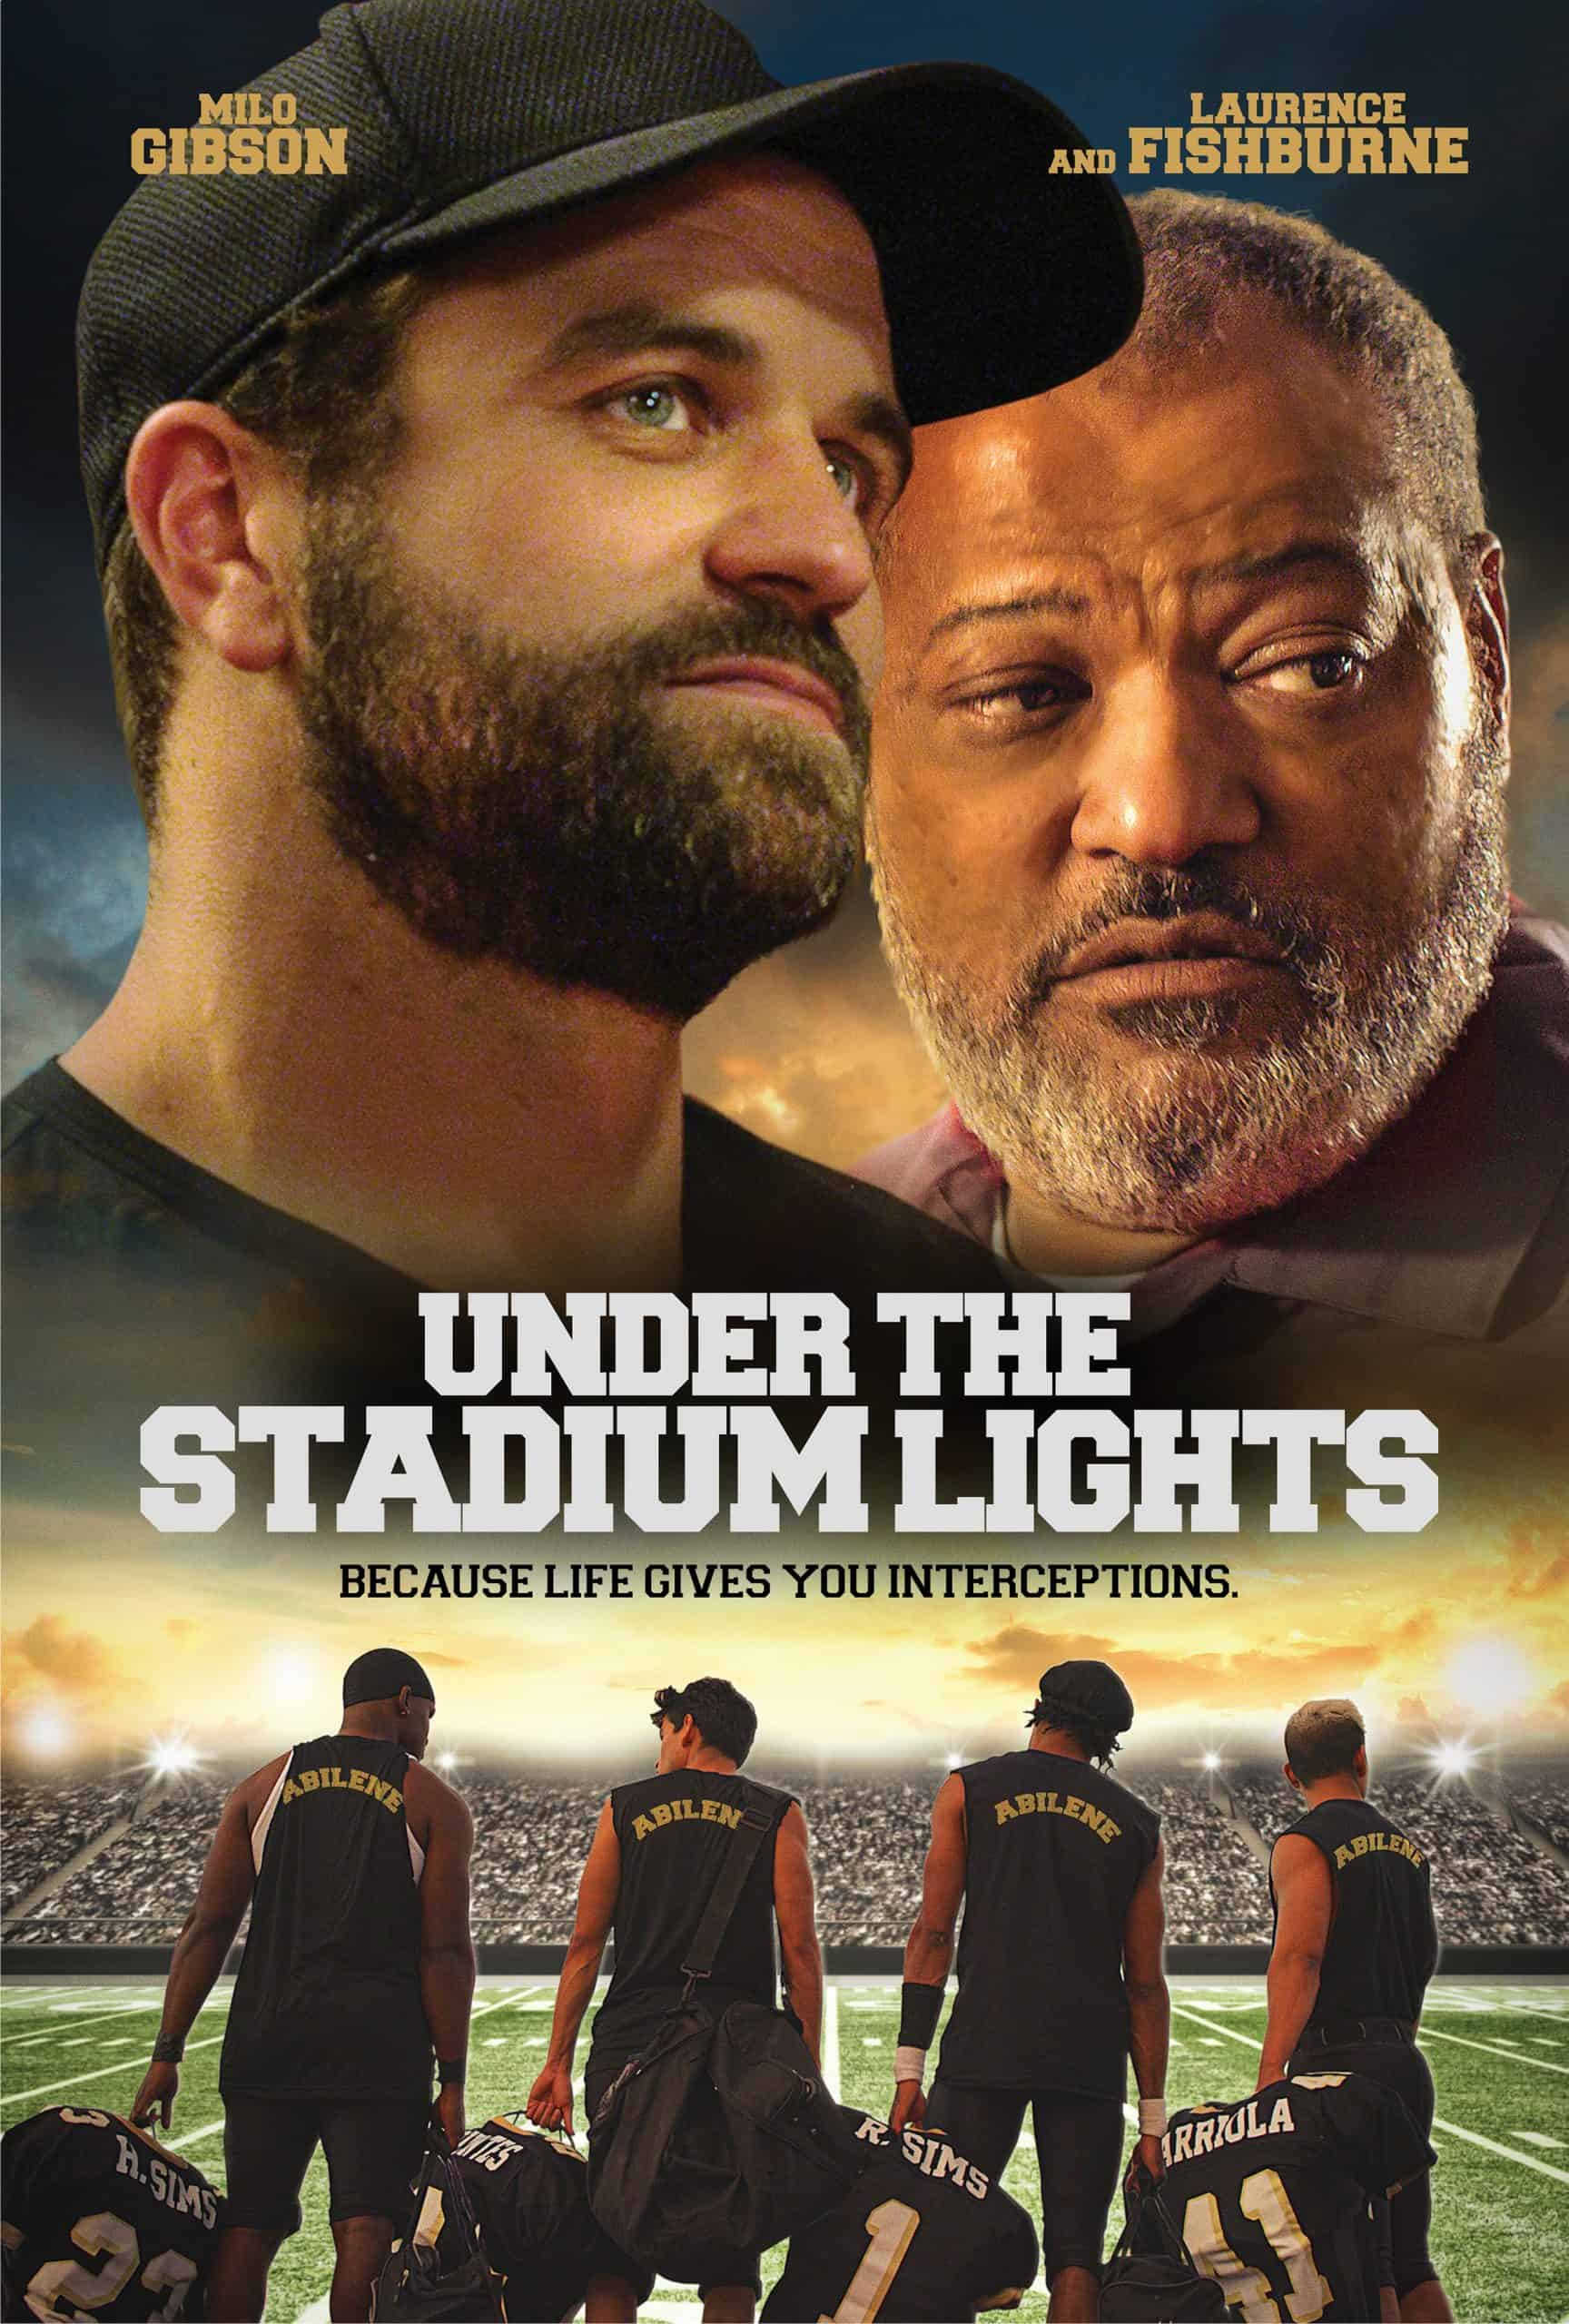 UNDER THE STADIUM LIGHTS - In Select Theaters, on Digital, and On Demand June 4, 2021 2